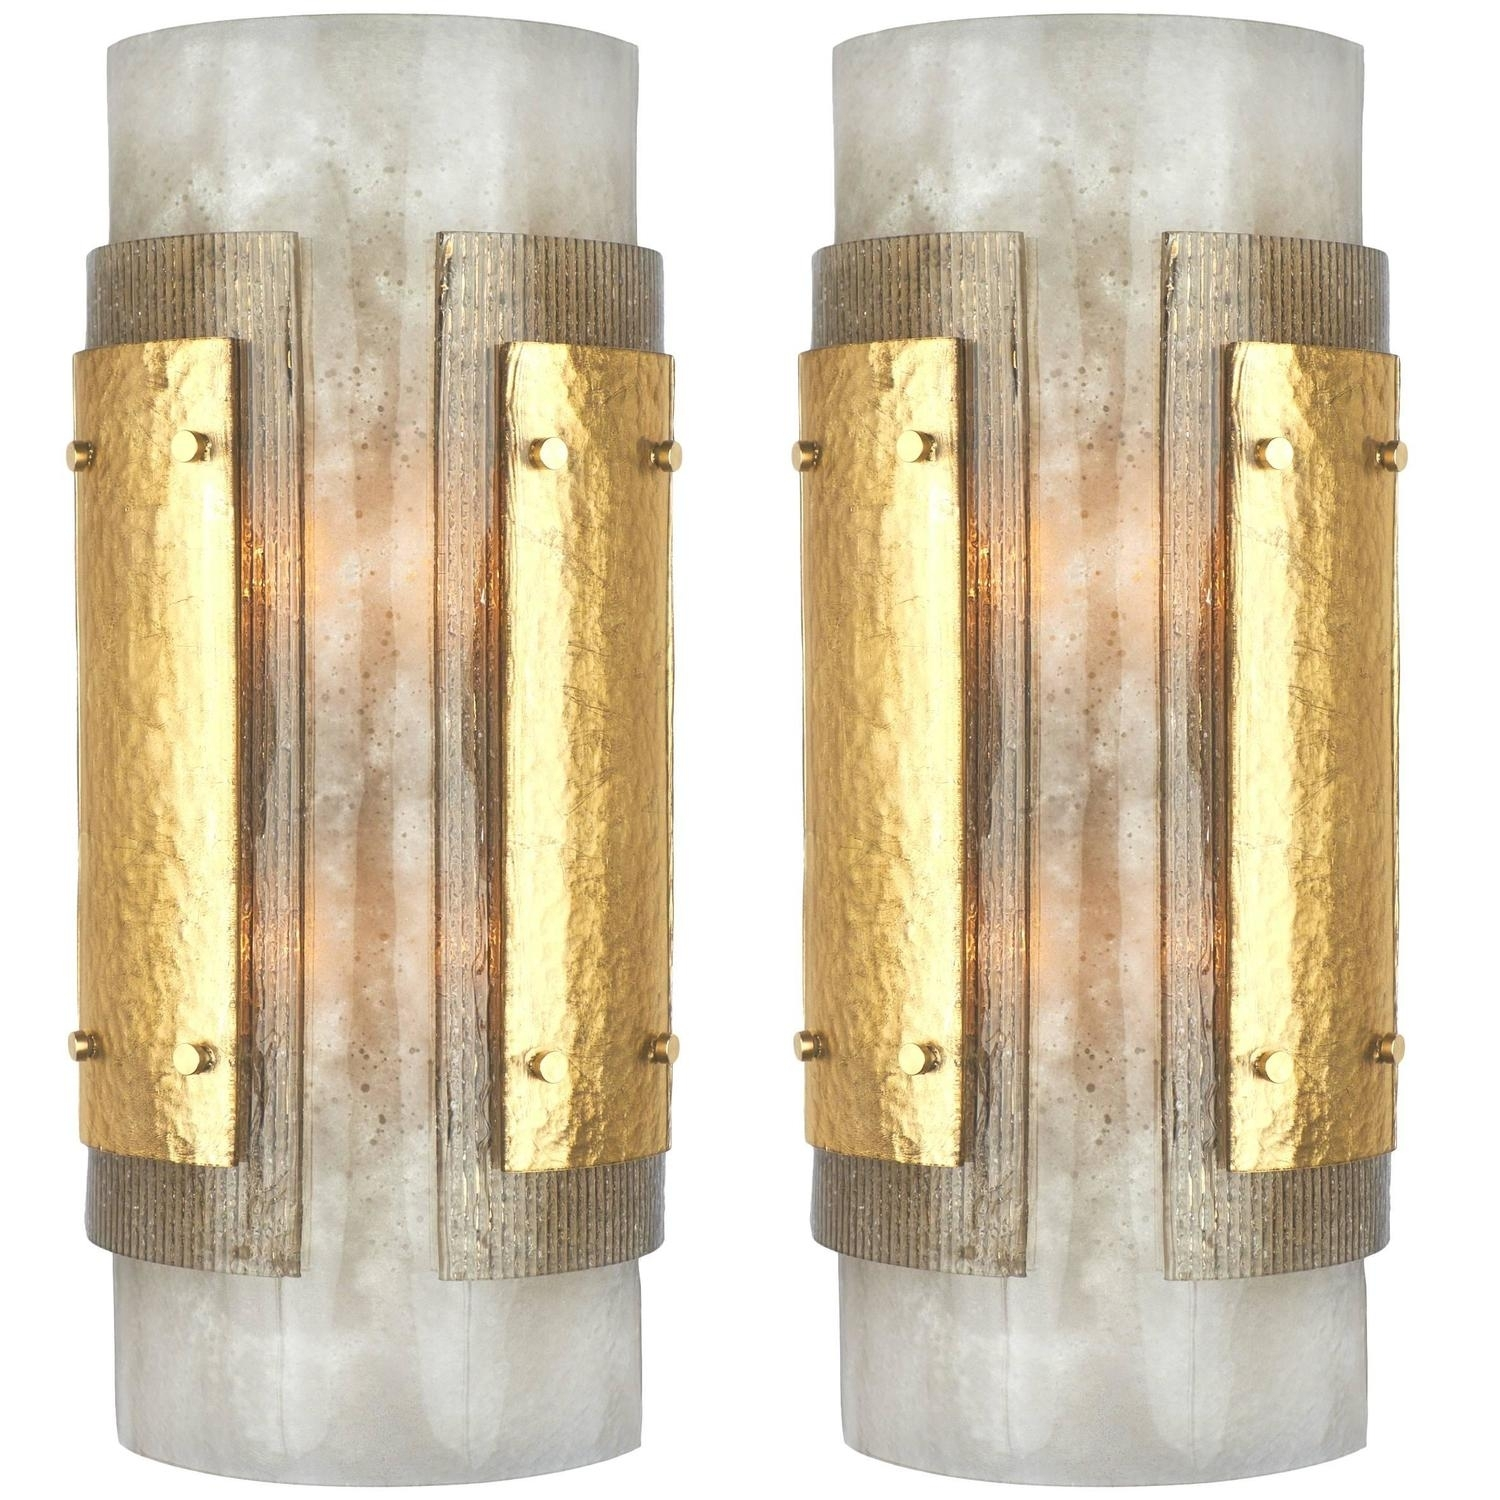 Italian Art Deco Murano Glass Wall Sconces With Best And Newest Art Deco Wall Sconces (View 14 of 20)